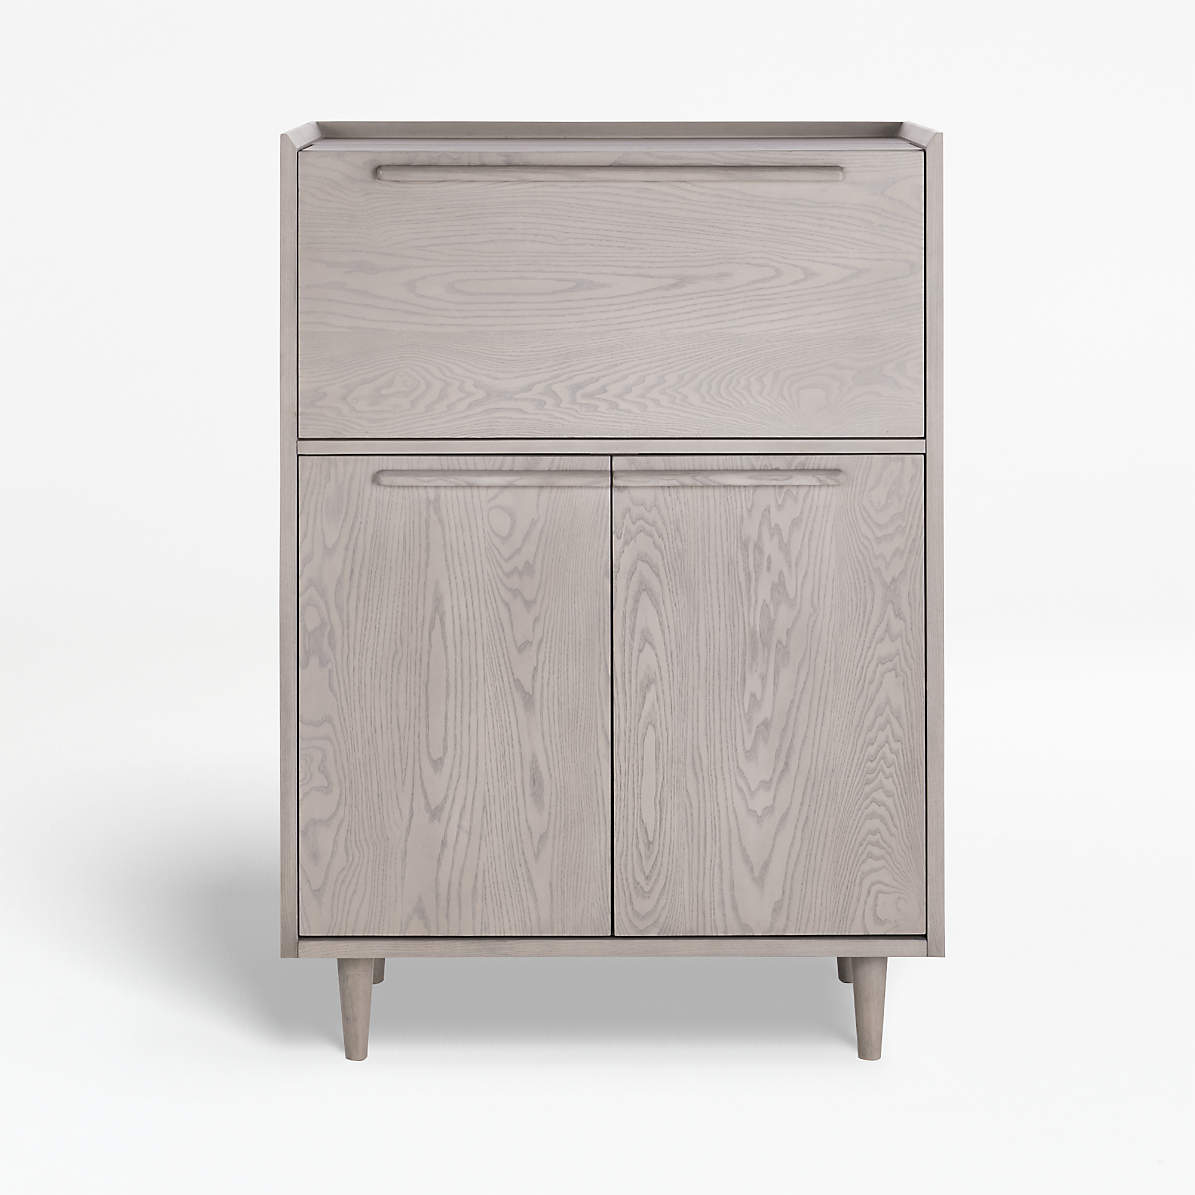 Tate Stone Bar Cabinet With Light Reviews Crate And Barrel